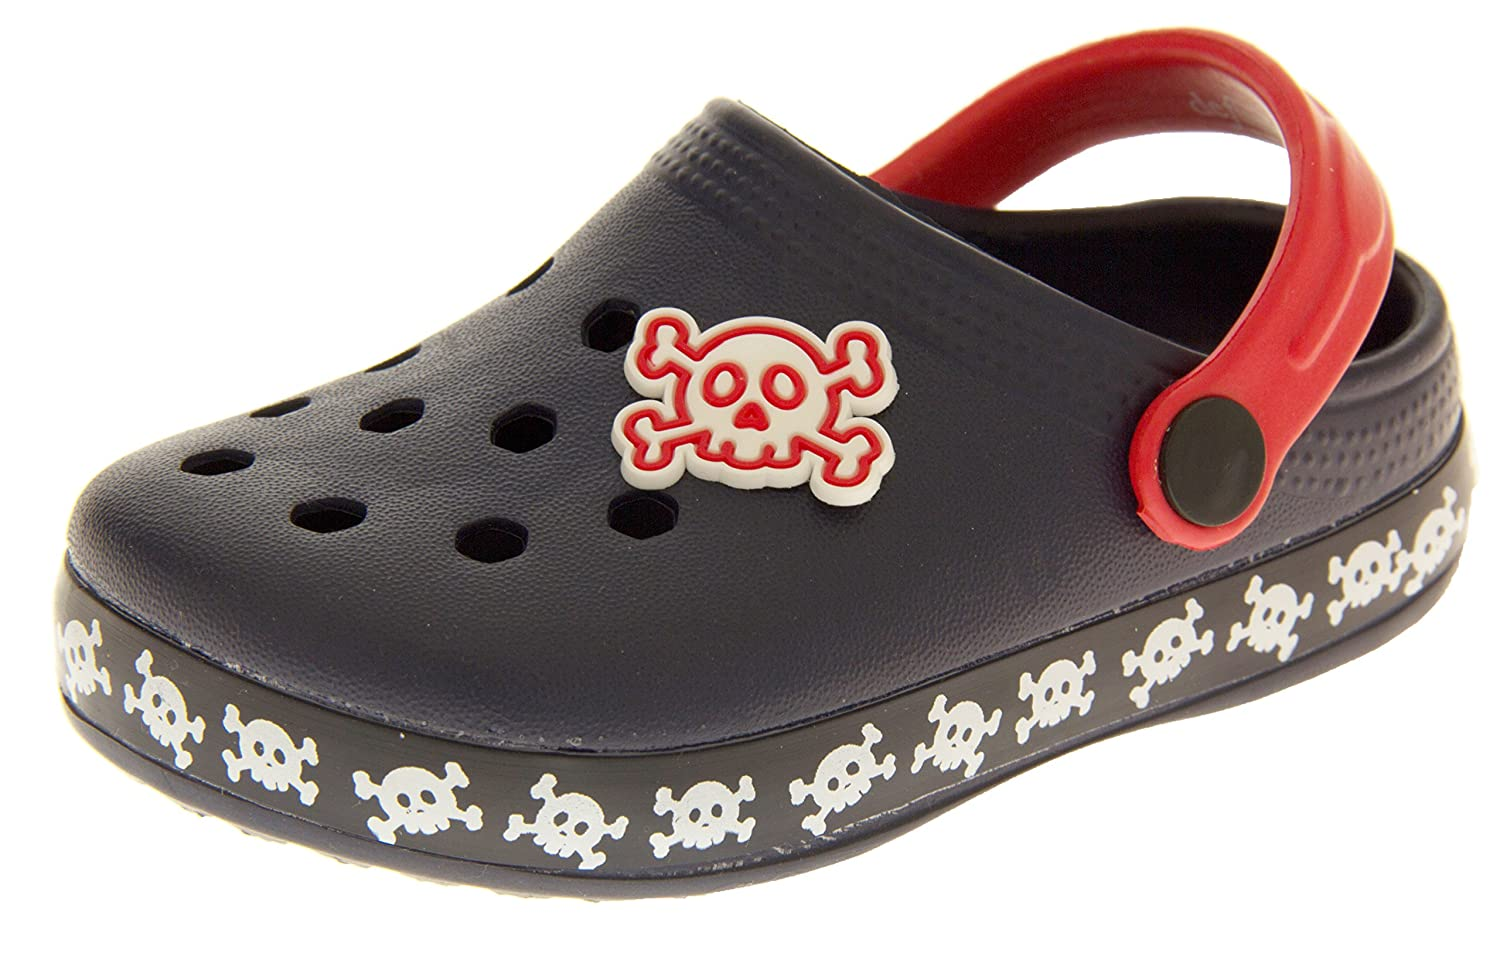 fe177ce56993 De fonseca boys girls kids navy blue pirate skull crossbones summer beach  clog sandals us shoes